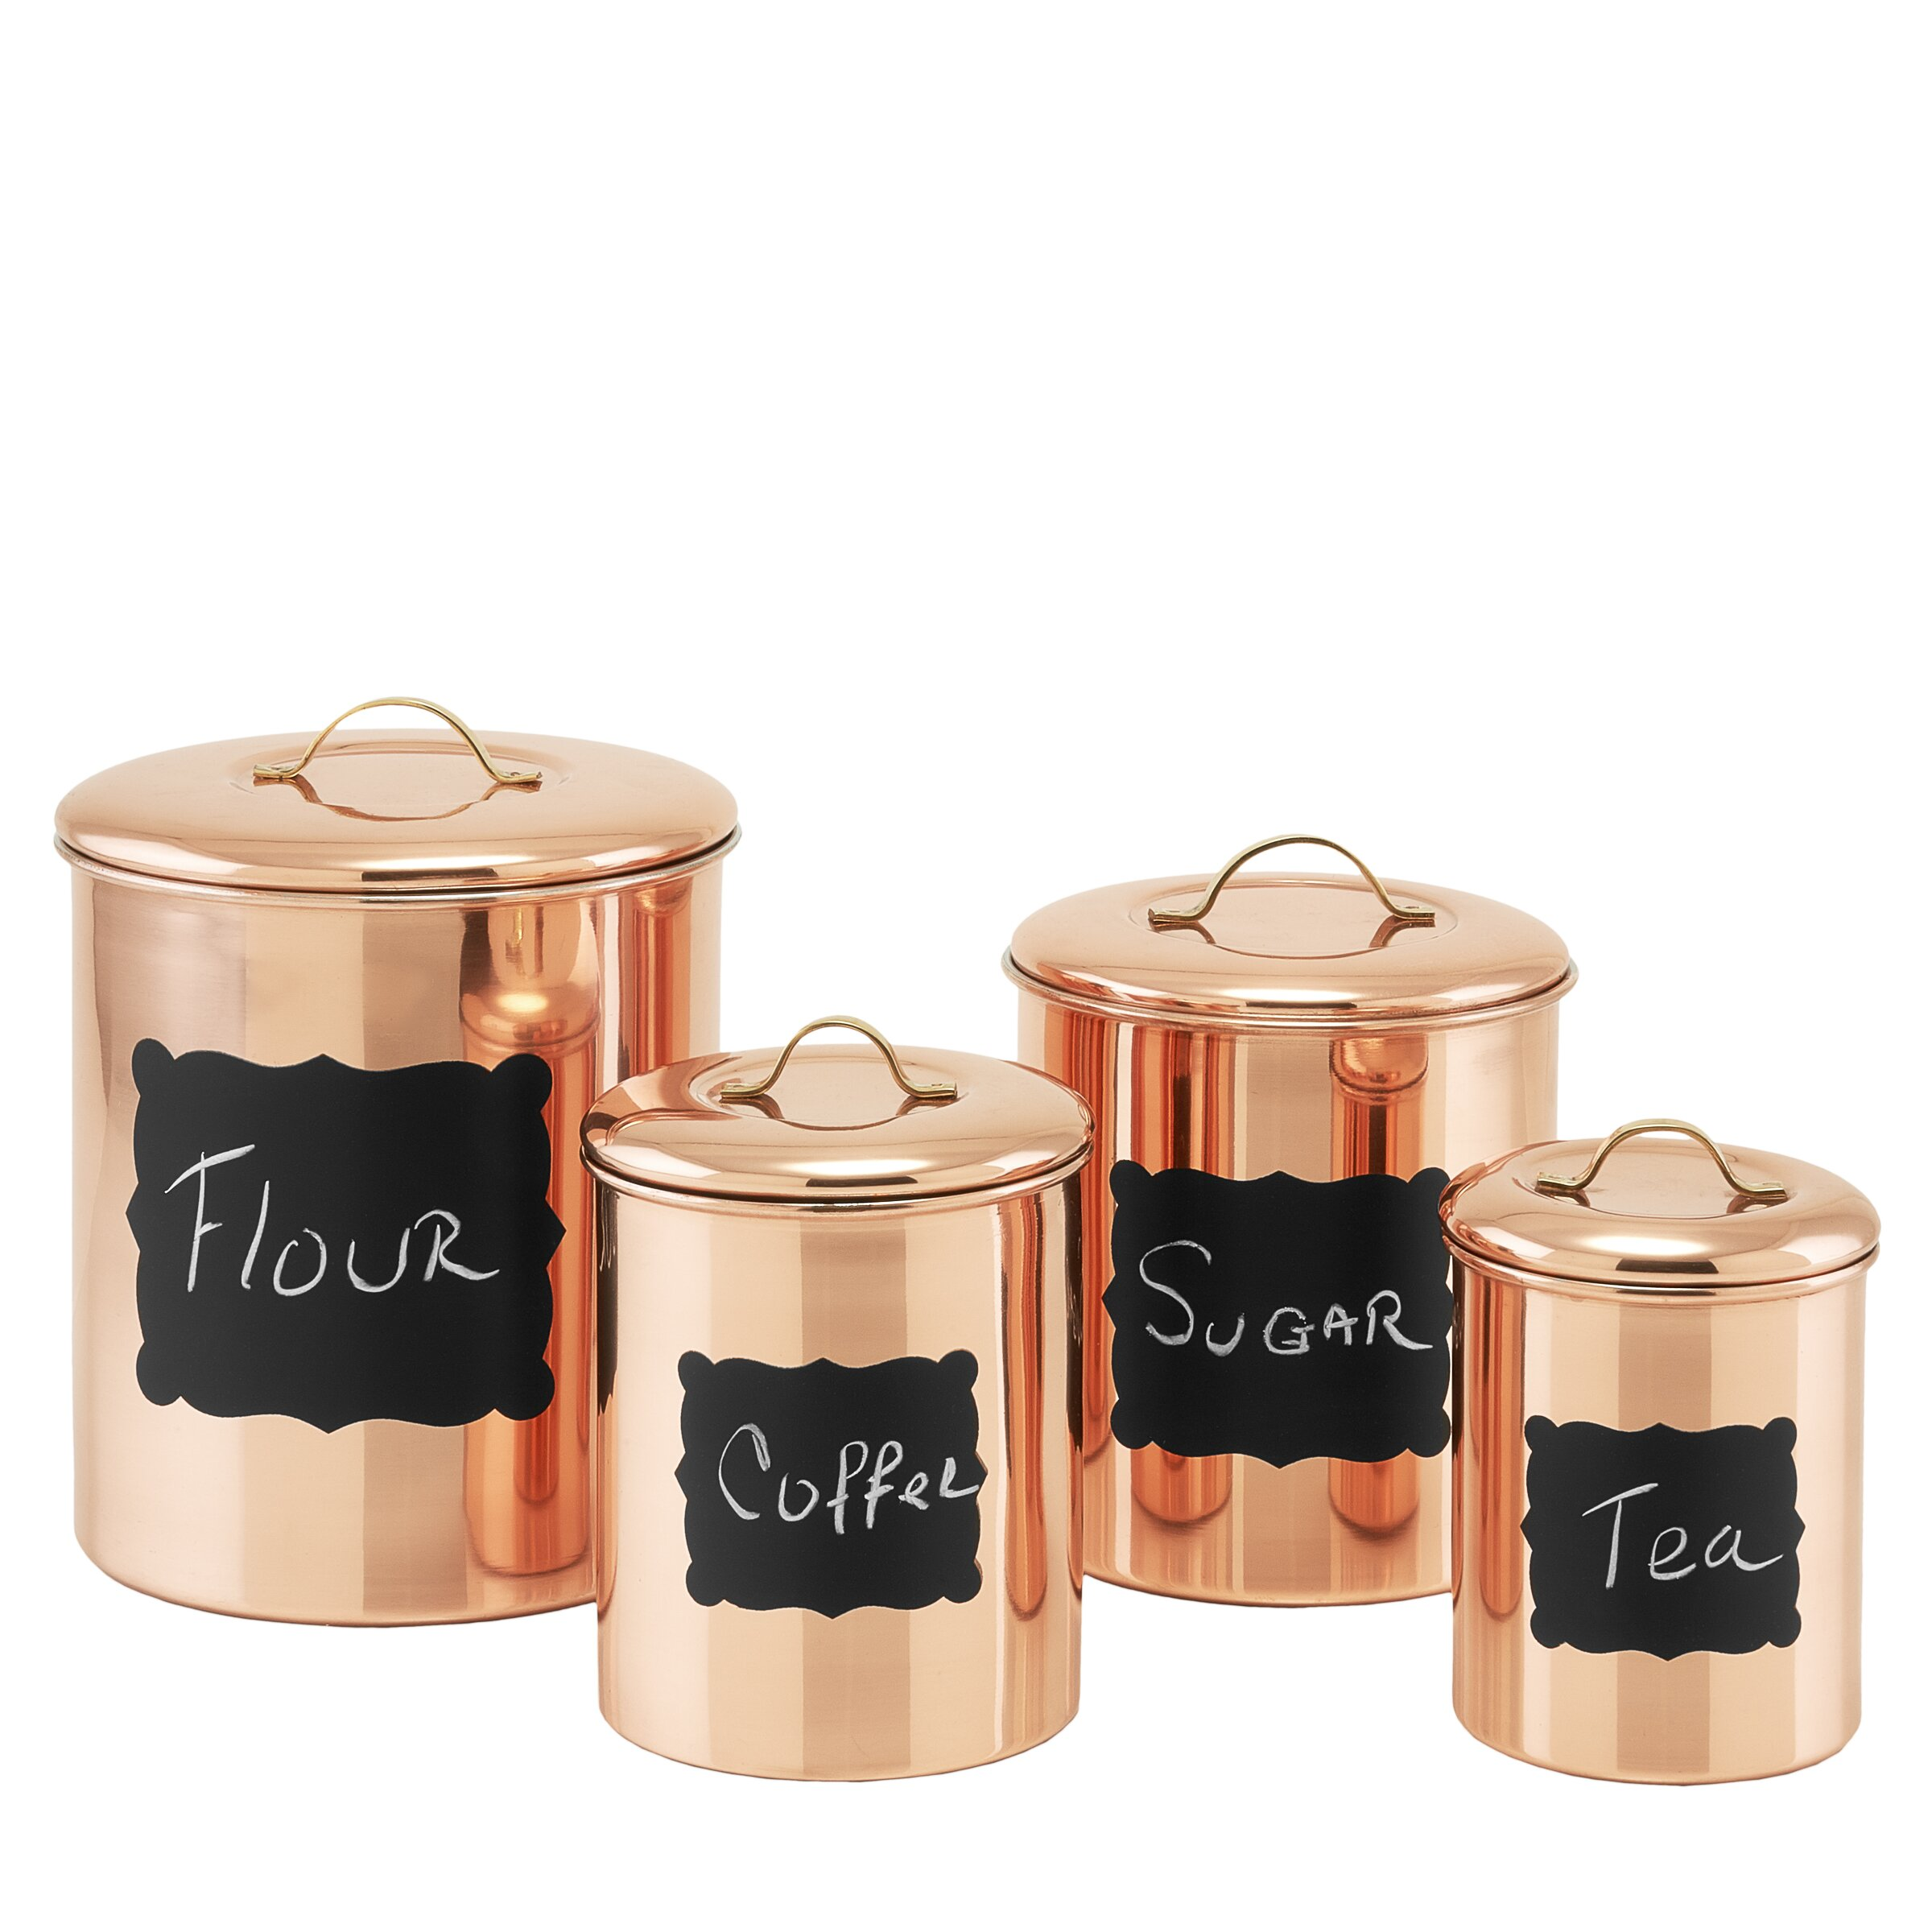 Old dutch 4 piece decor copper chalkboard canister set for Hearth and home designs canister set